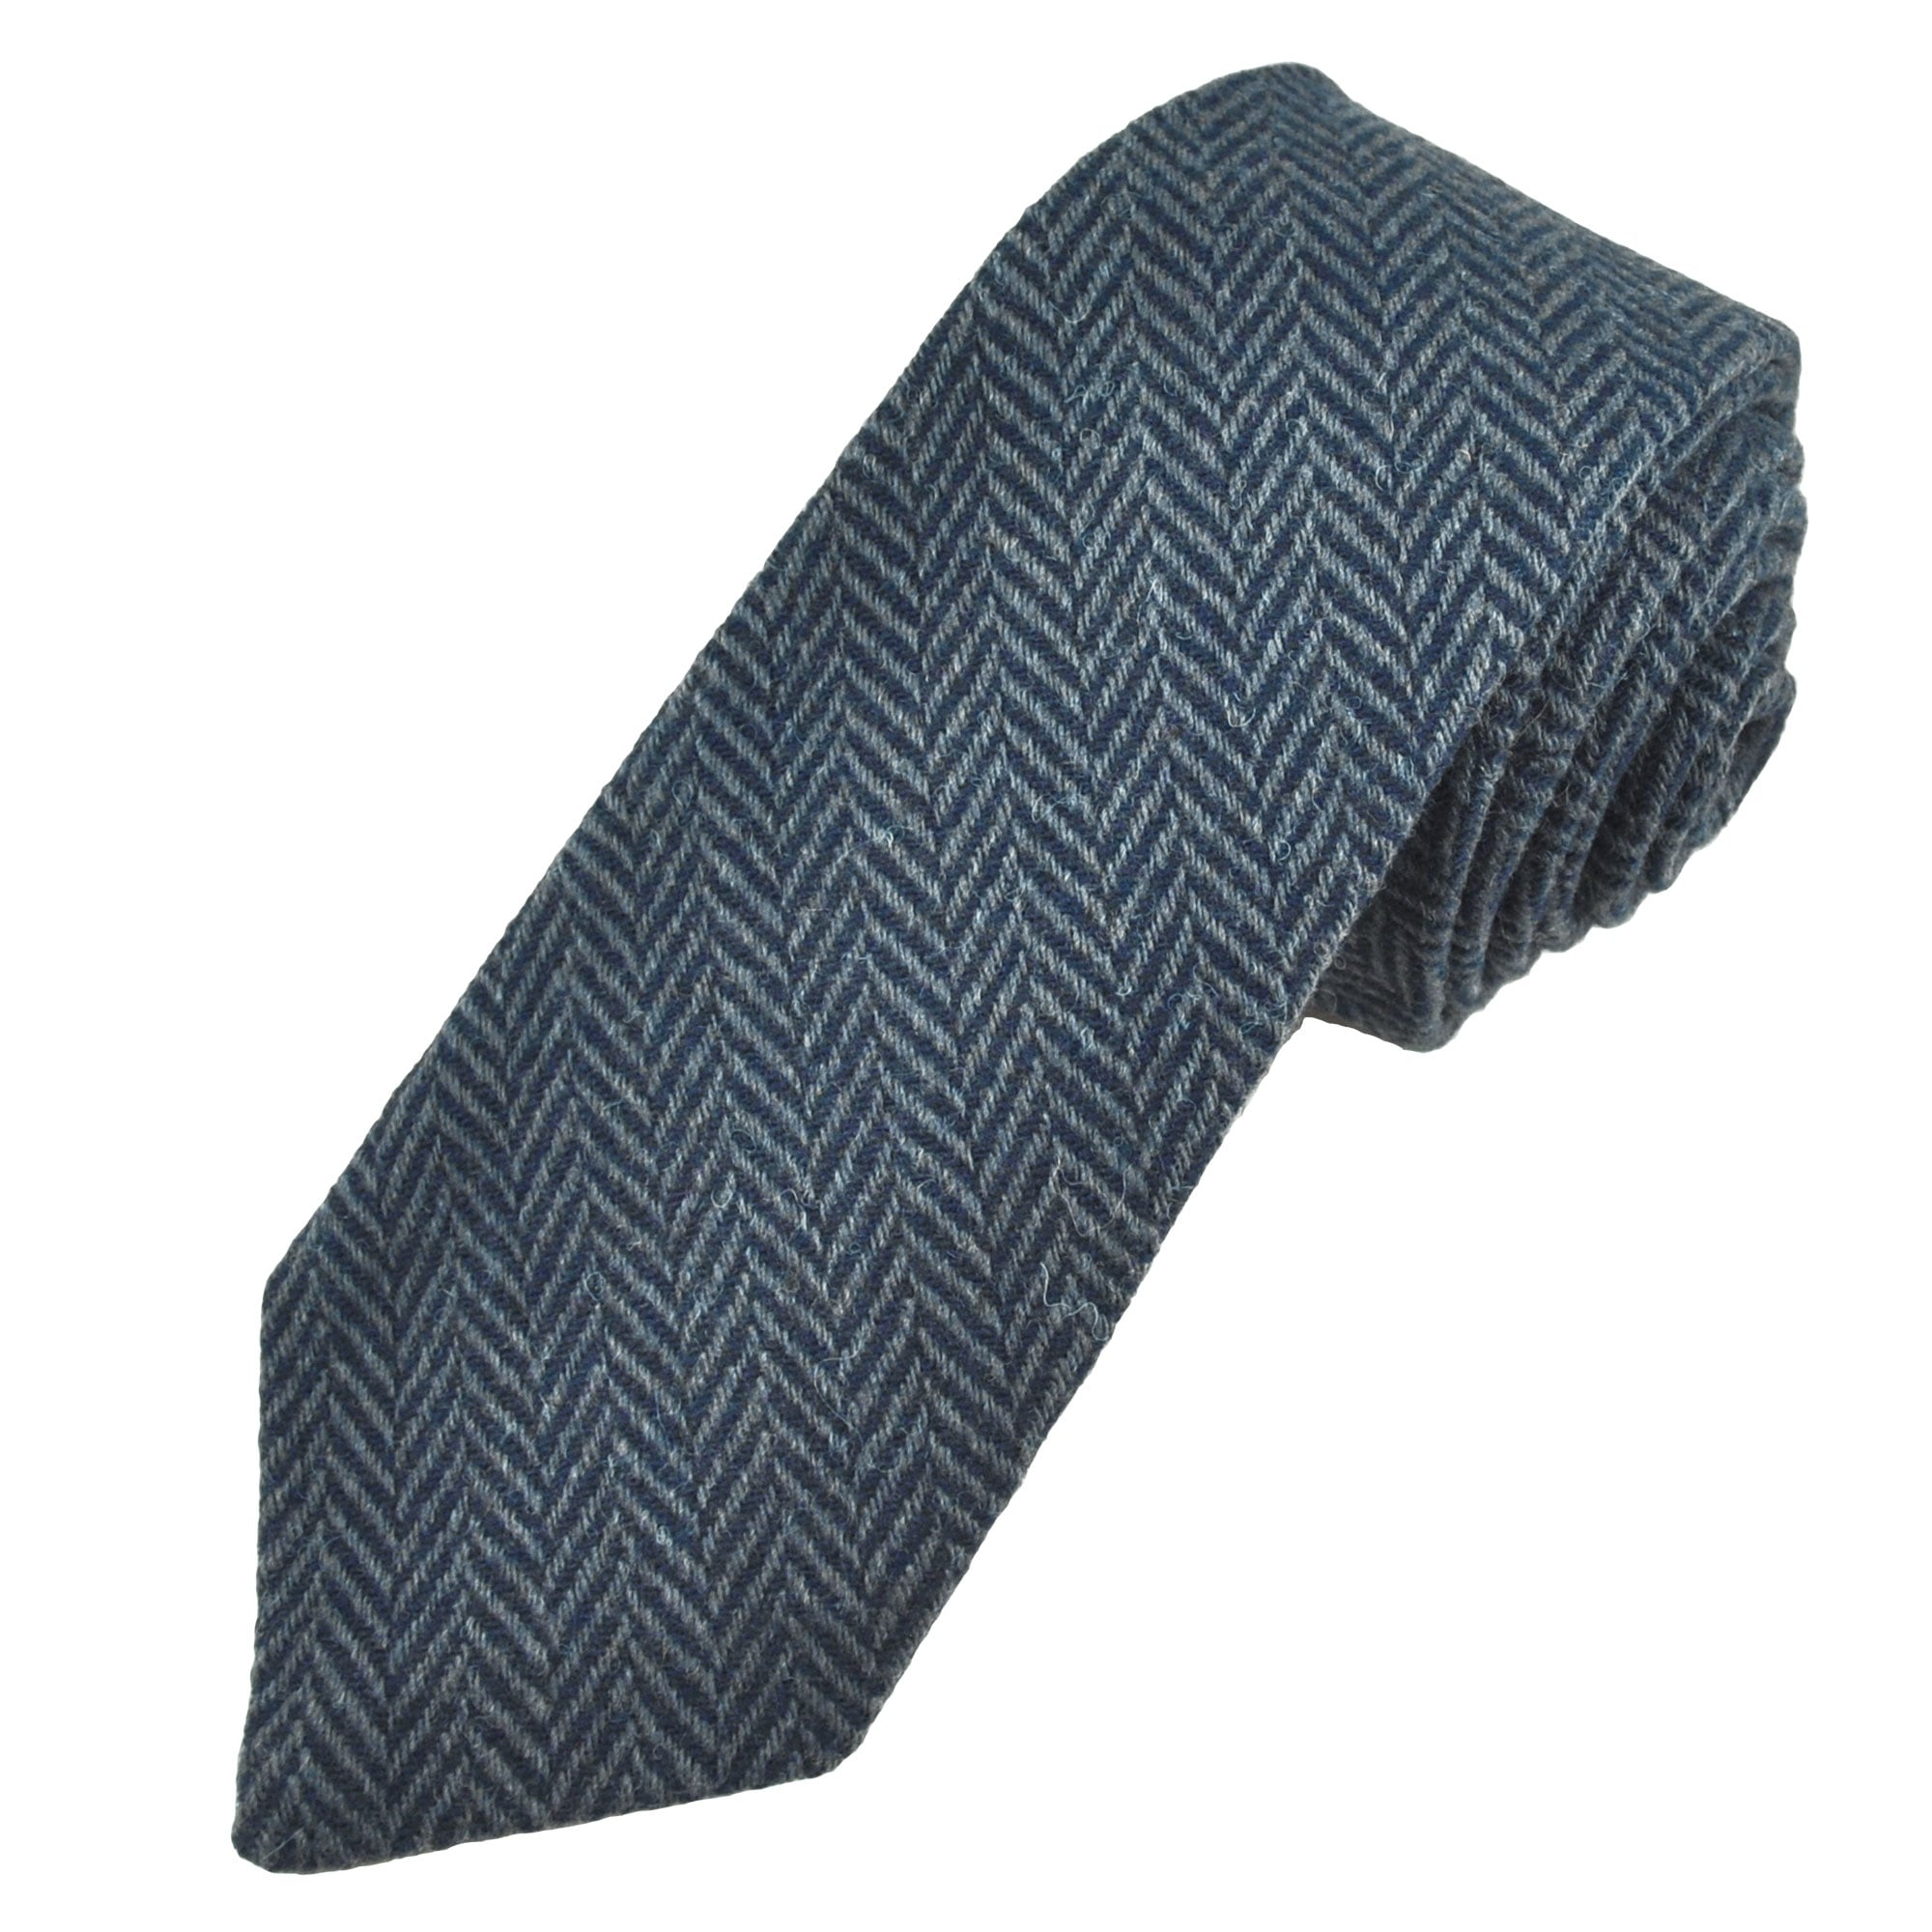 navy blue grey herringbone tweed wool tie from ties